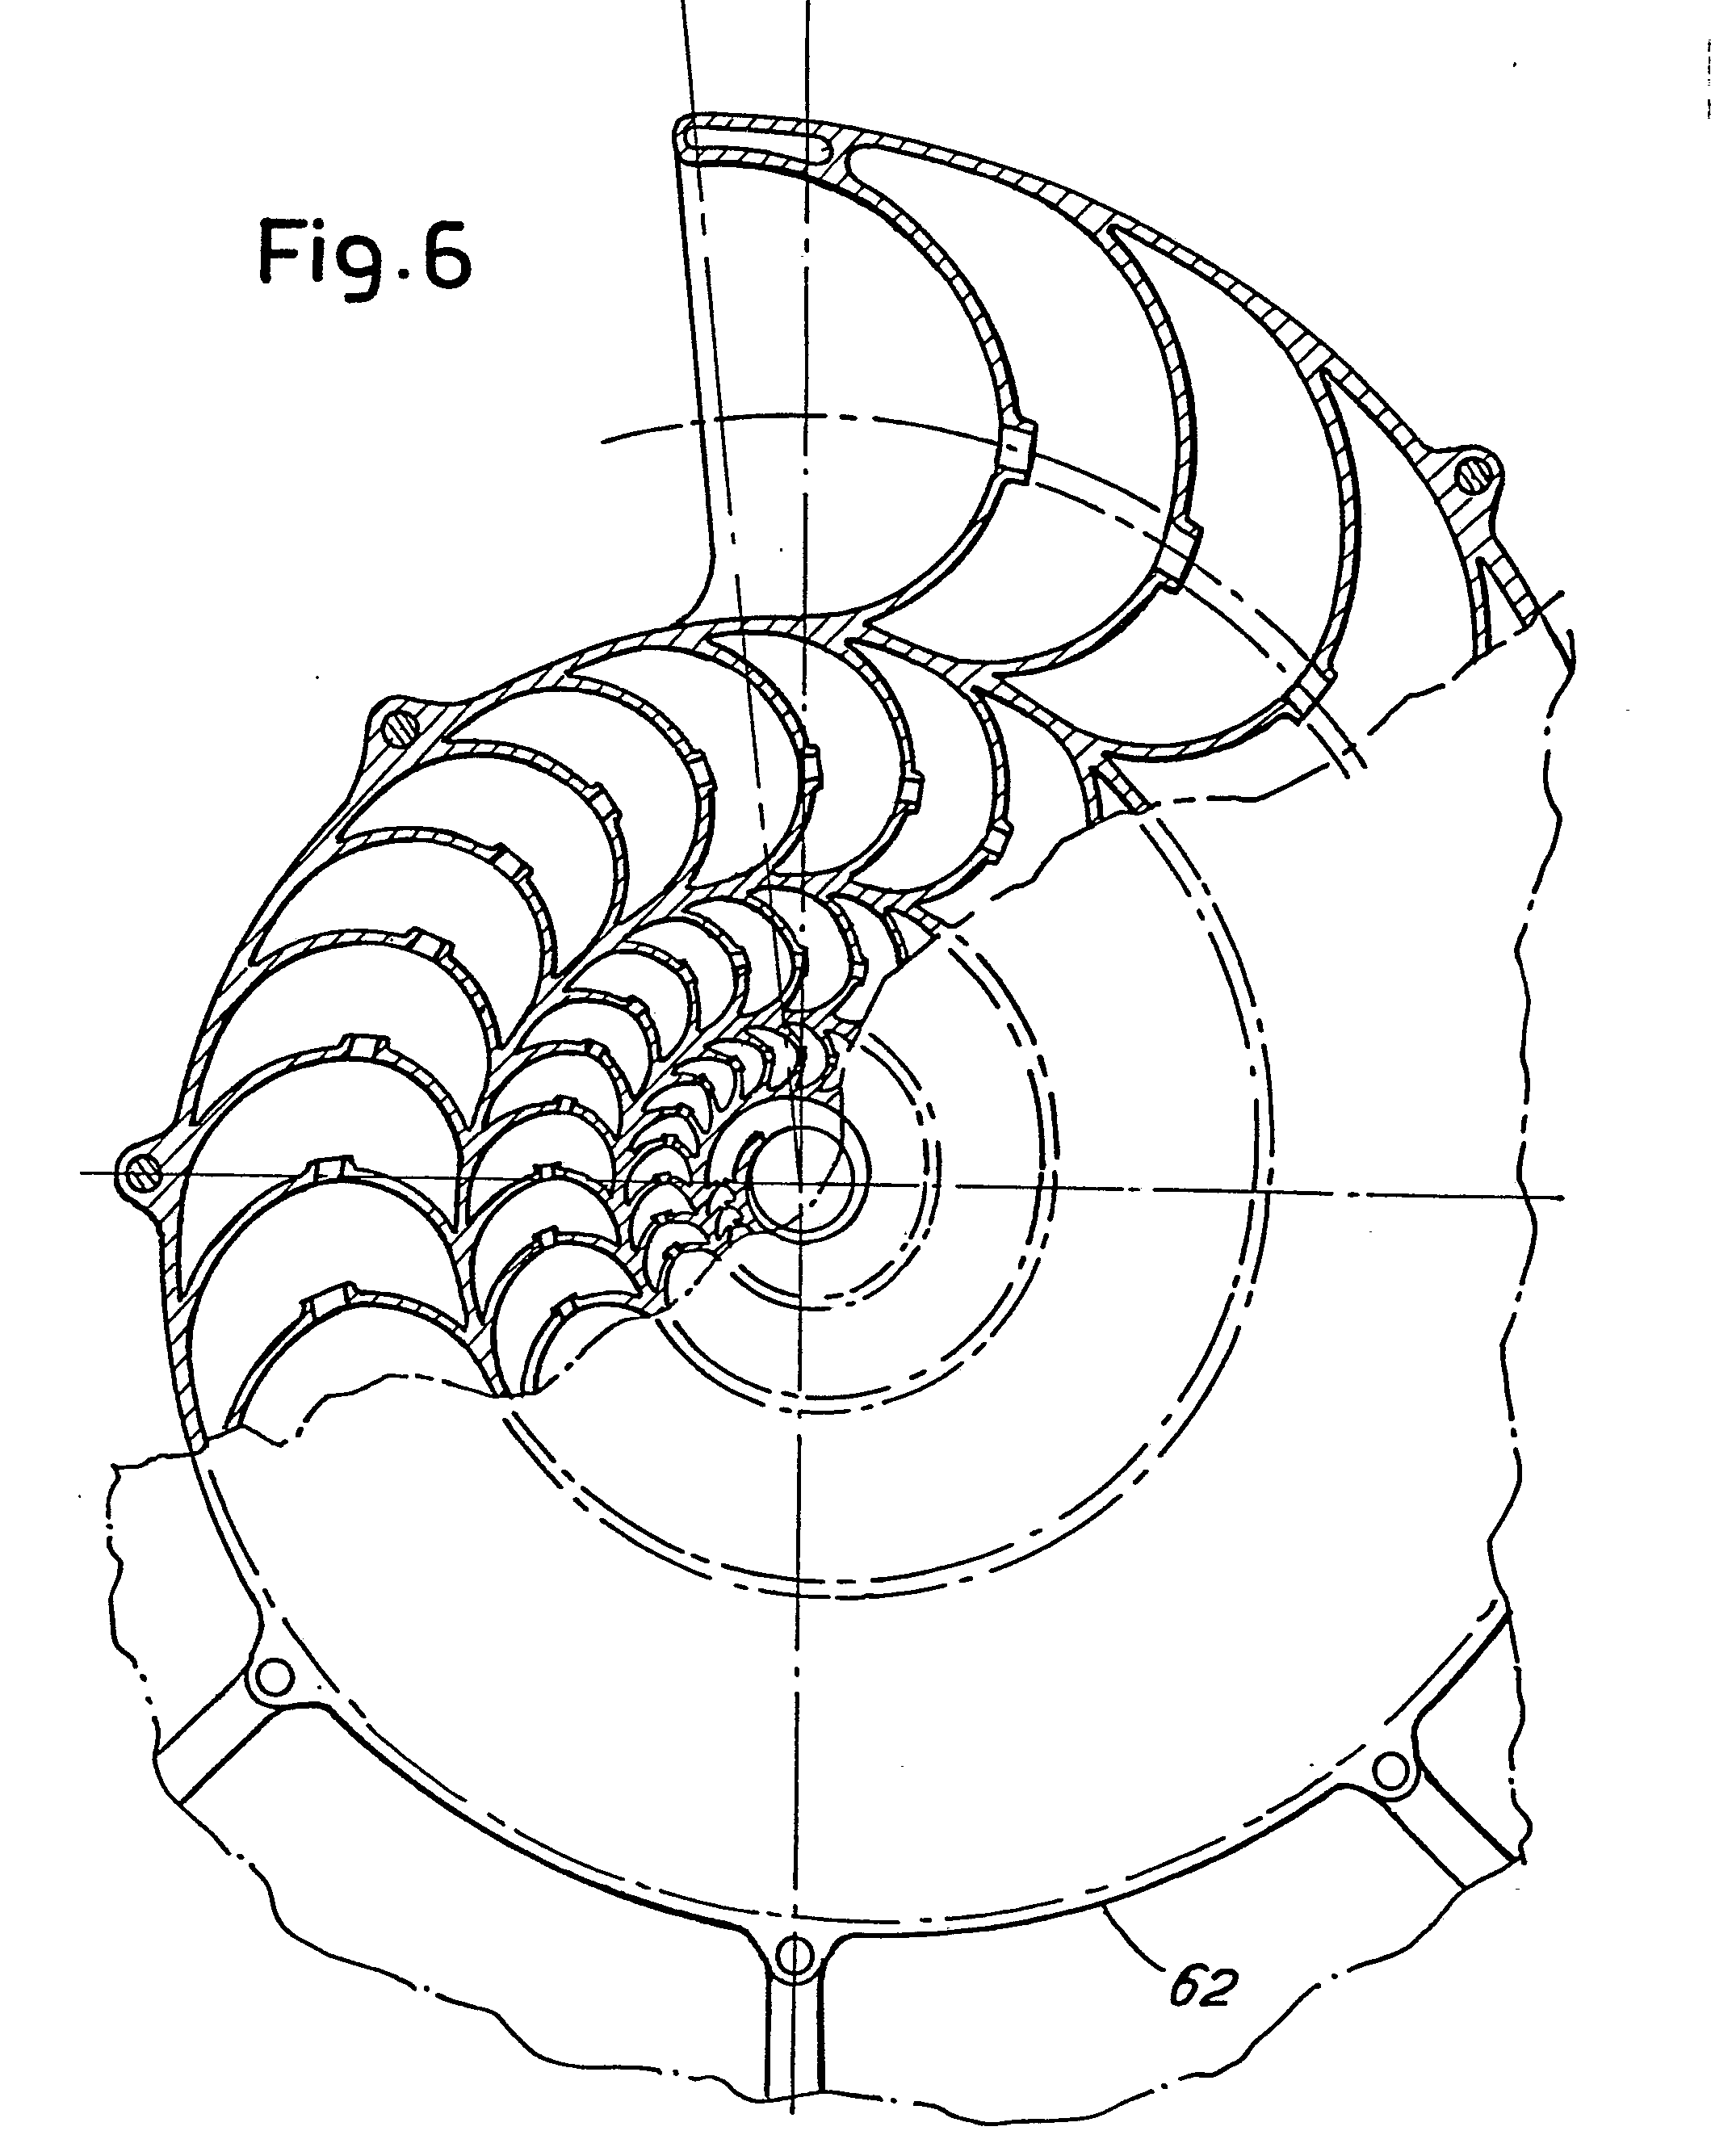 Chambered Nautilus Drawing For Nautilus Shell Drawing